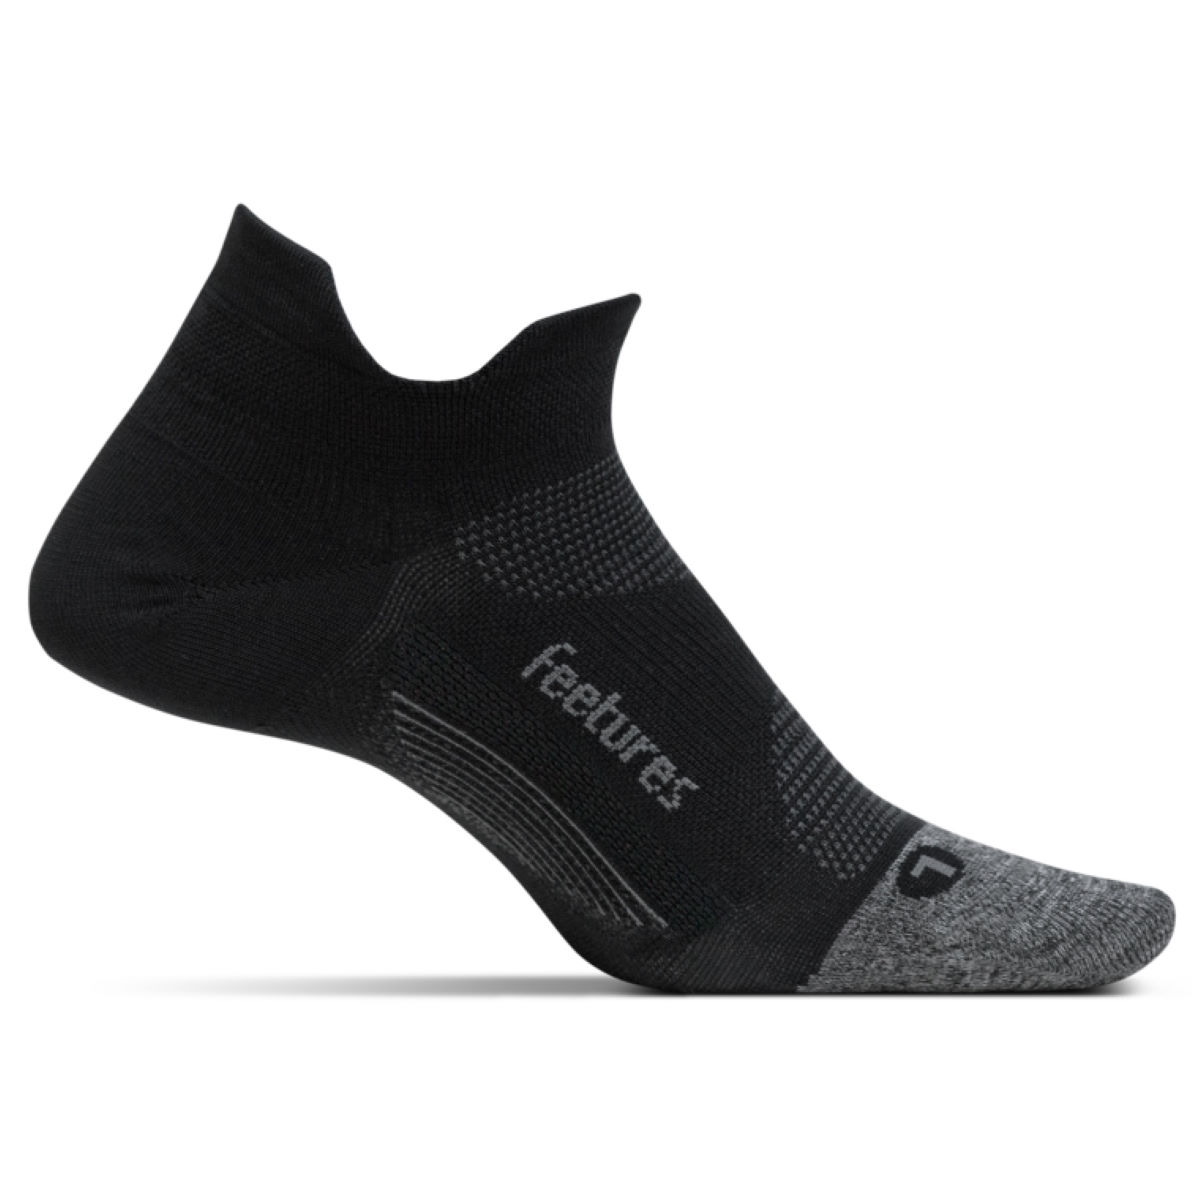 Calcetines Feetures! Elite Ultra Light No Show Tab - Calcetines para correr